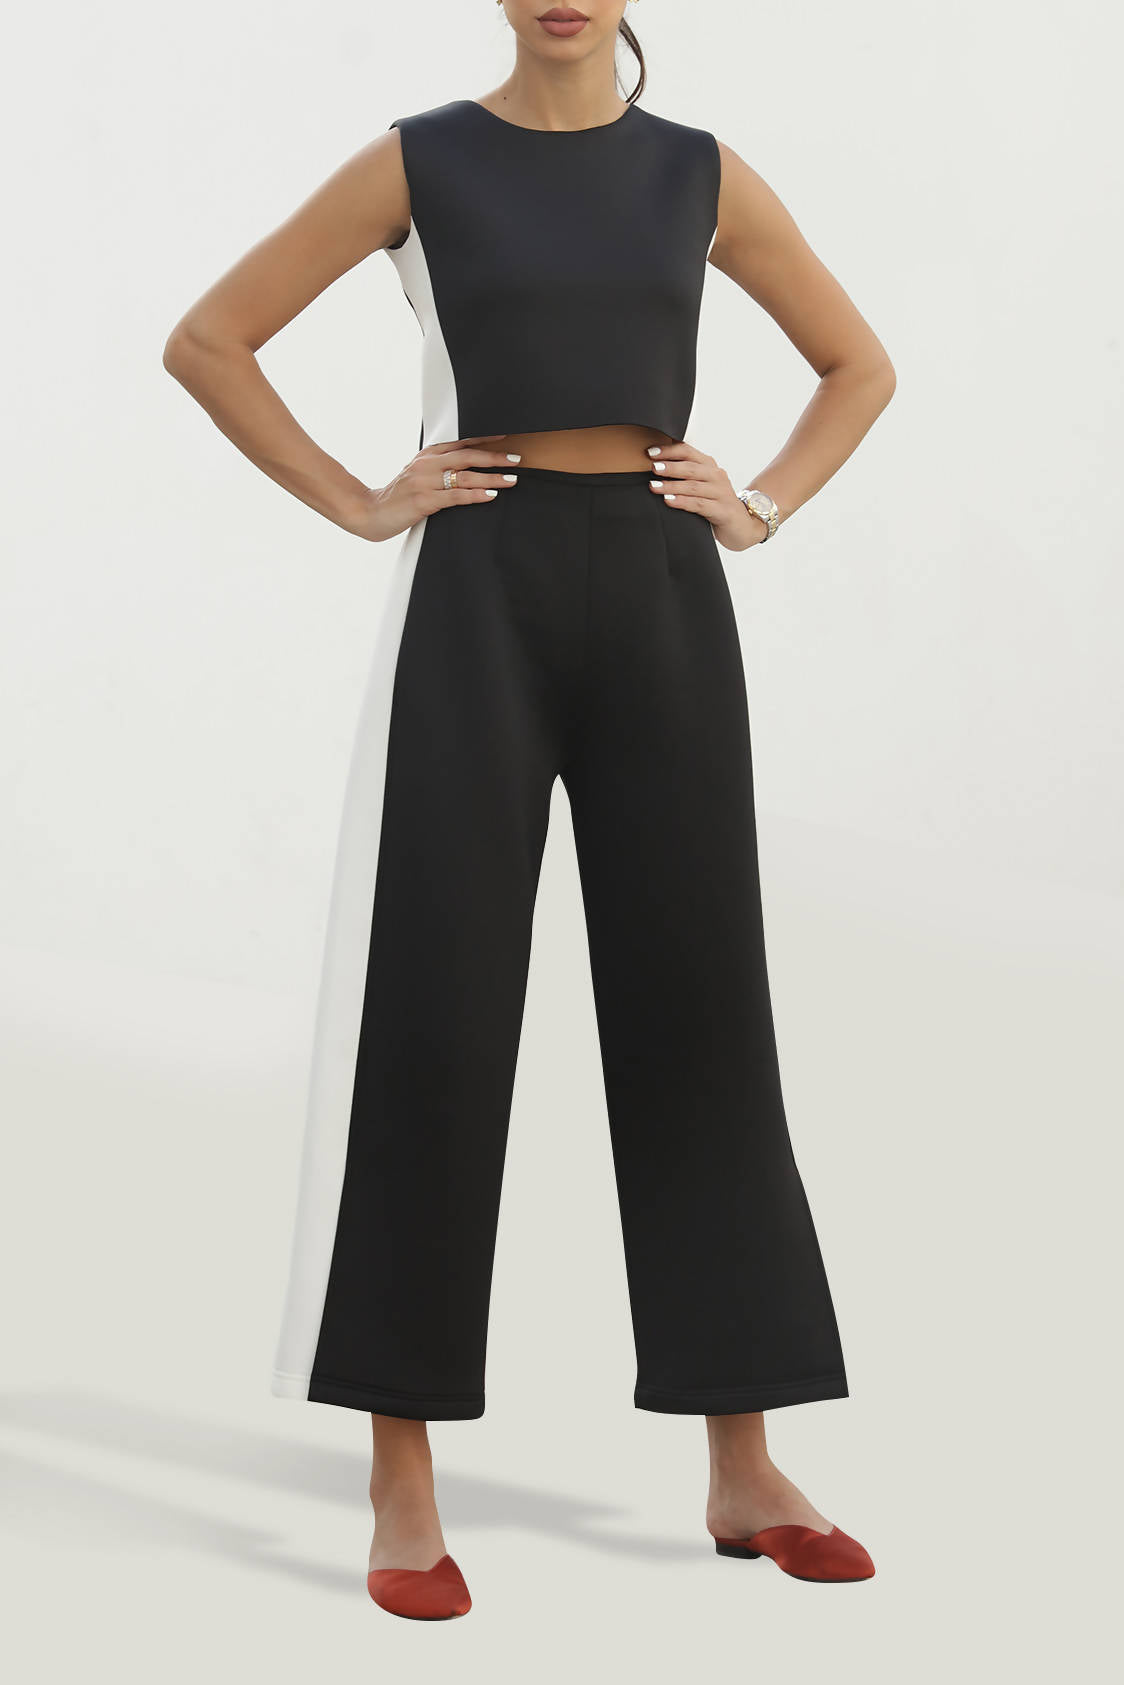 CropTop and Pants Set